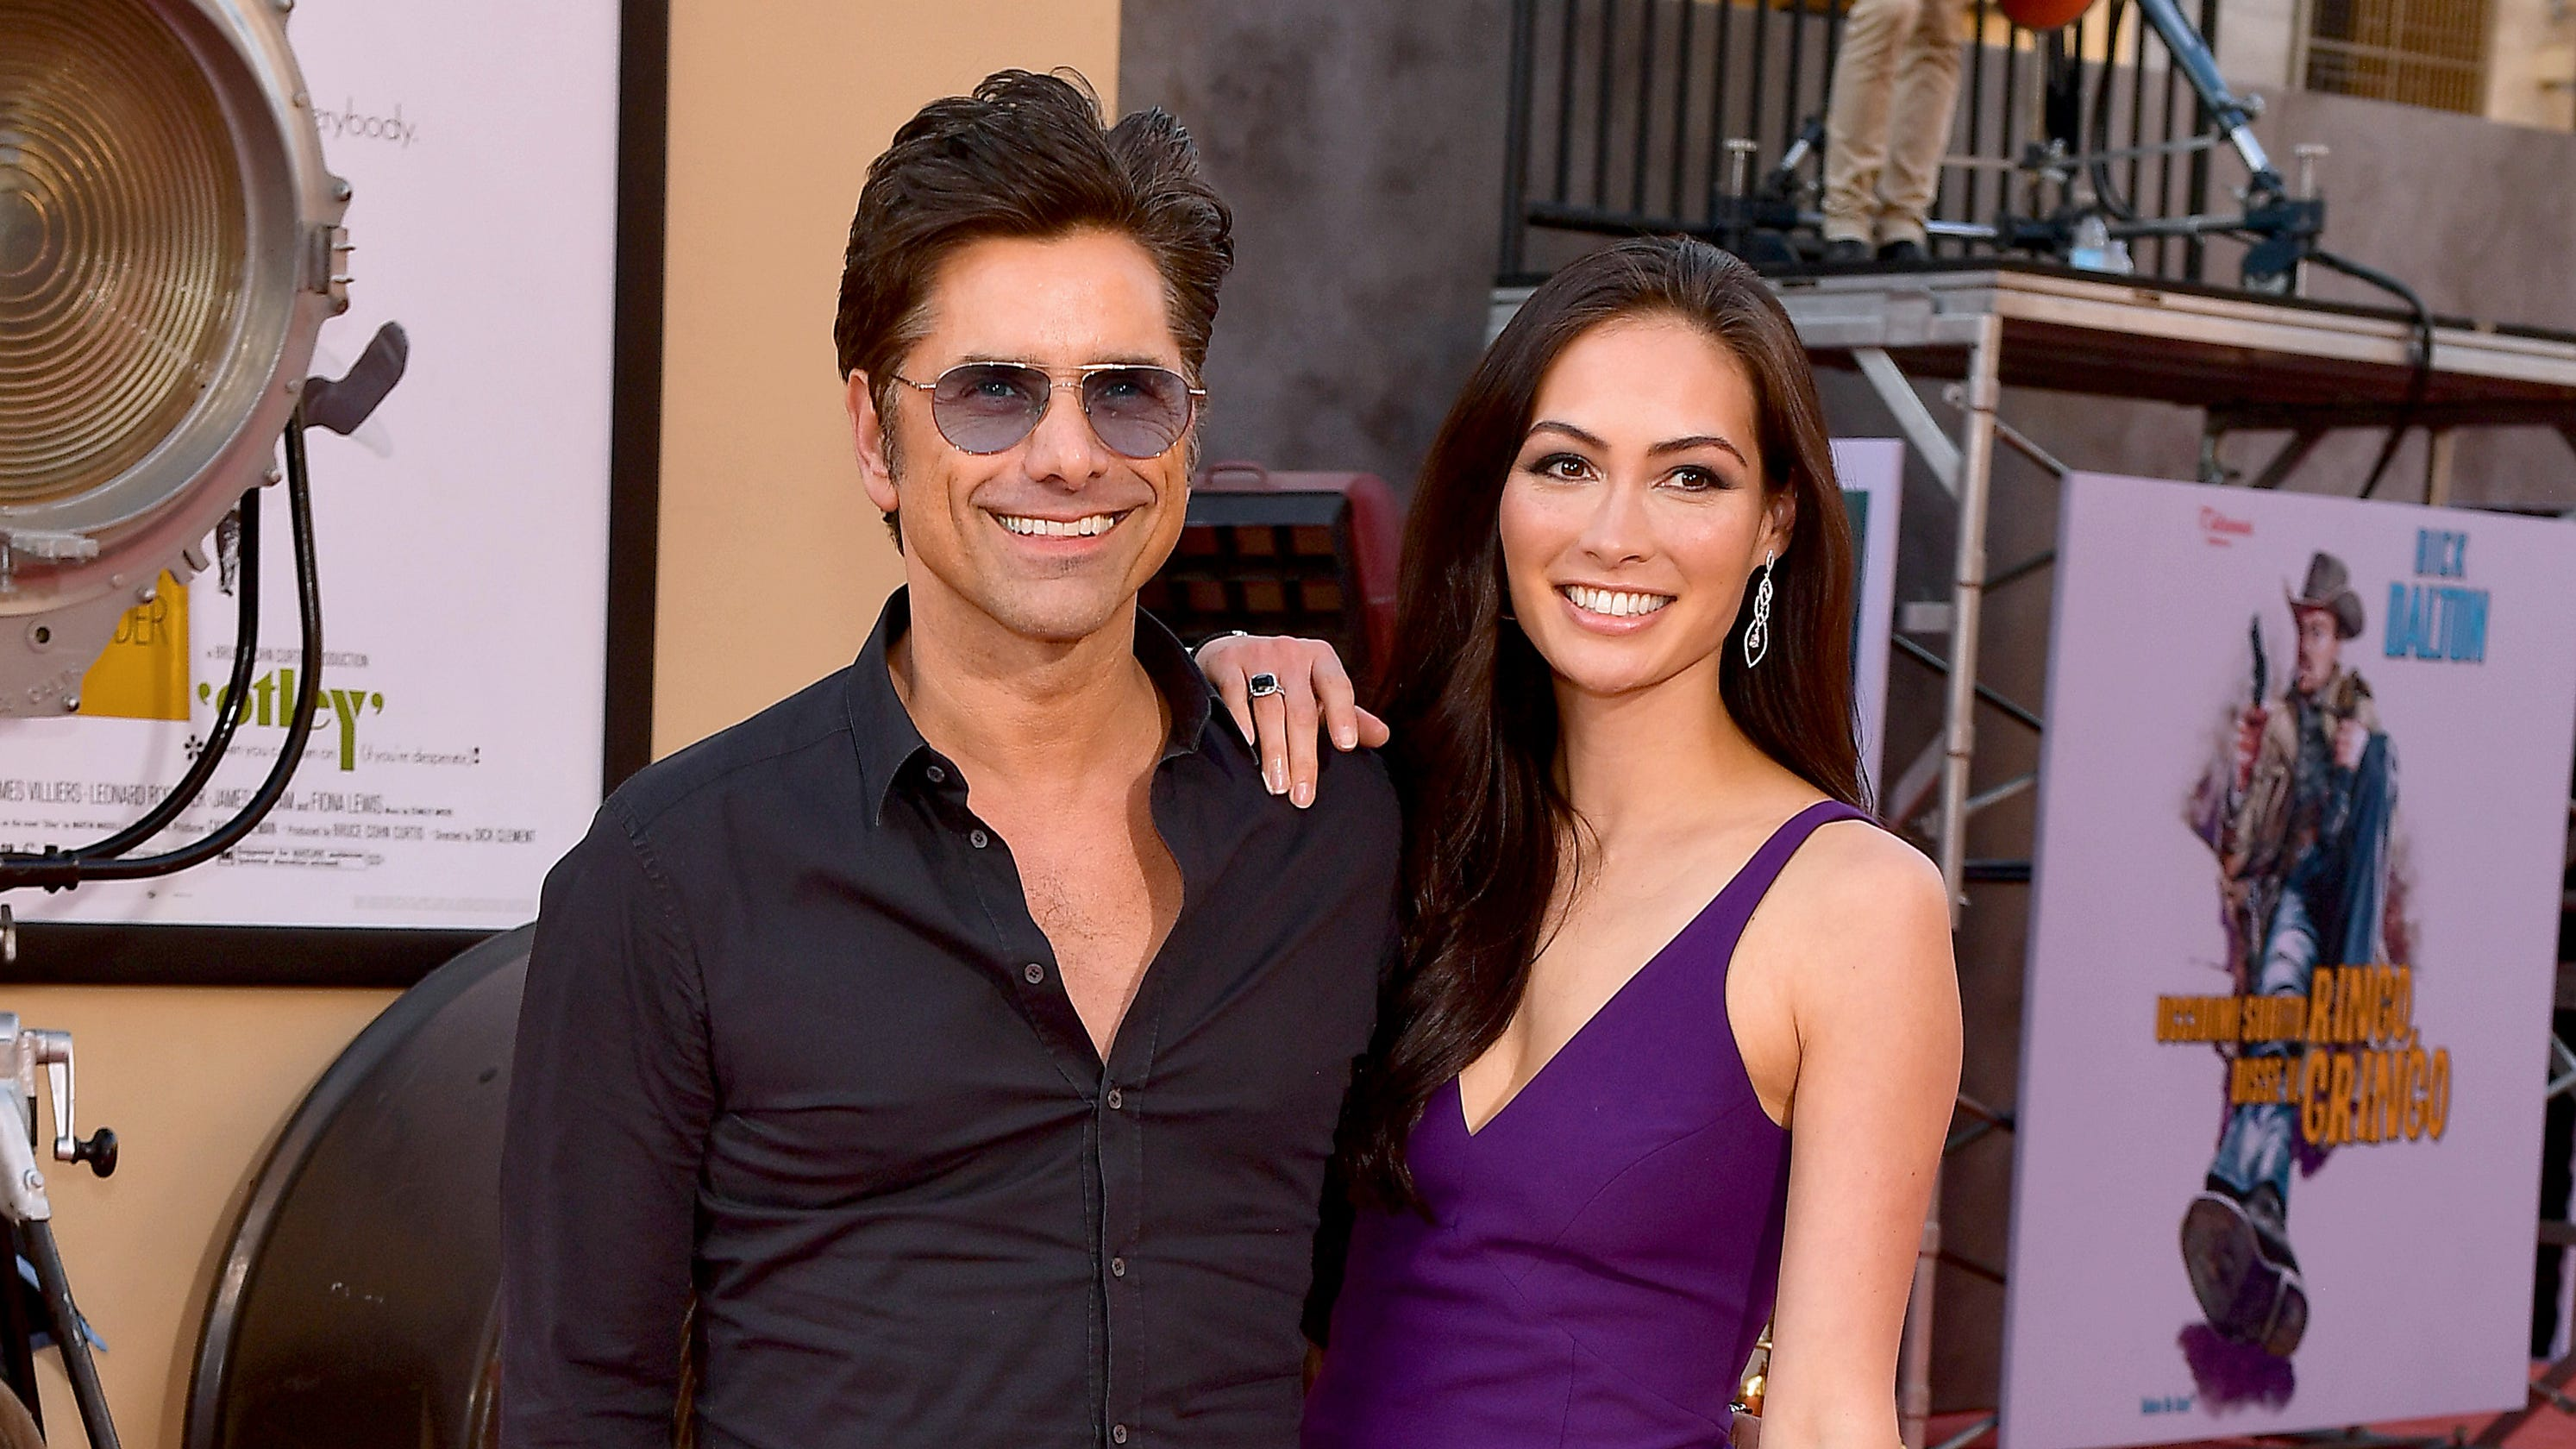 It's National Dessert Day! Make John Stamos' favorite gluten-free dessert at home